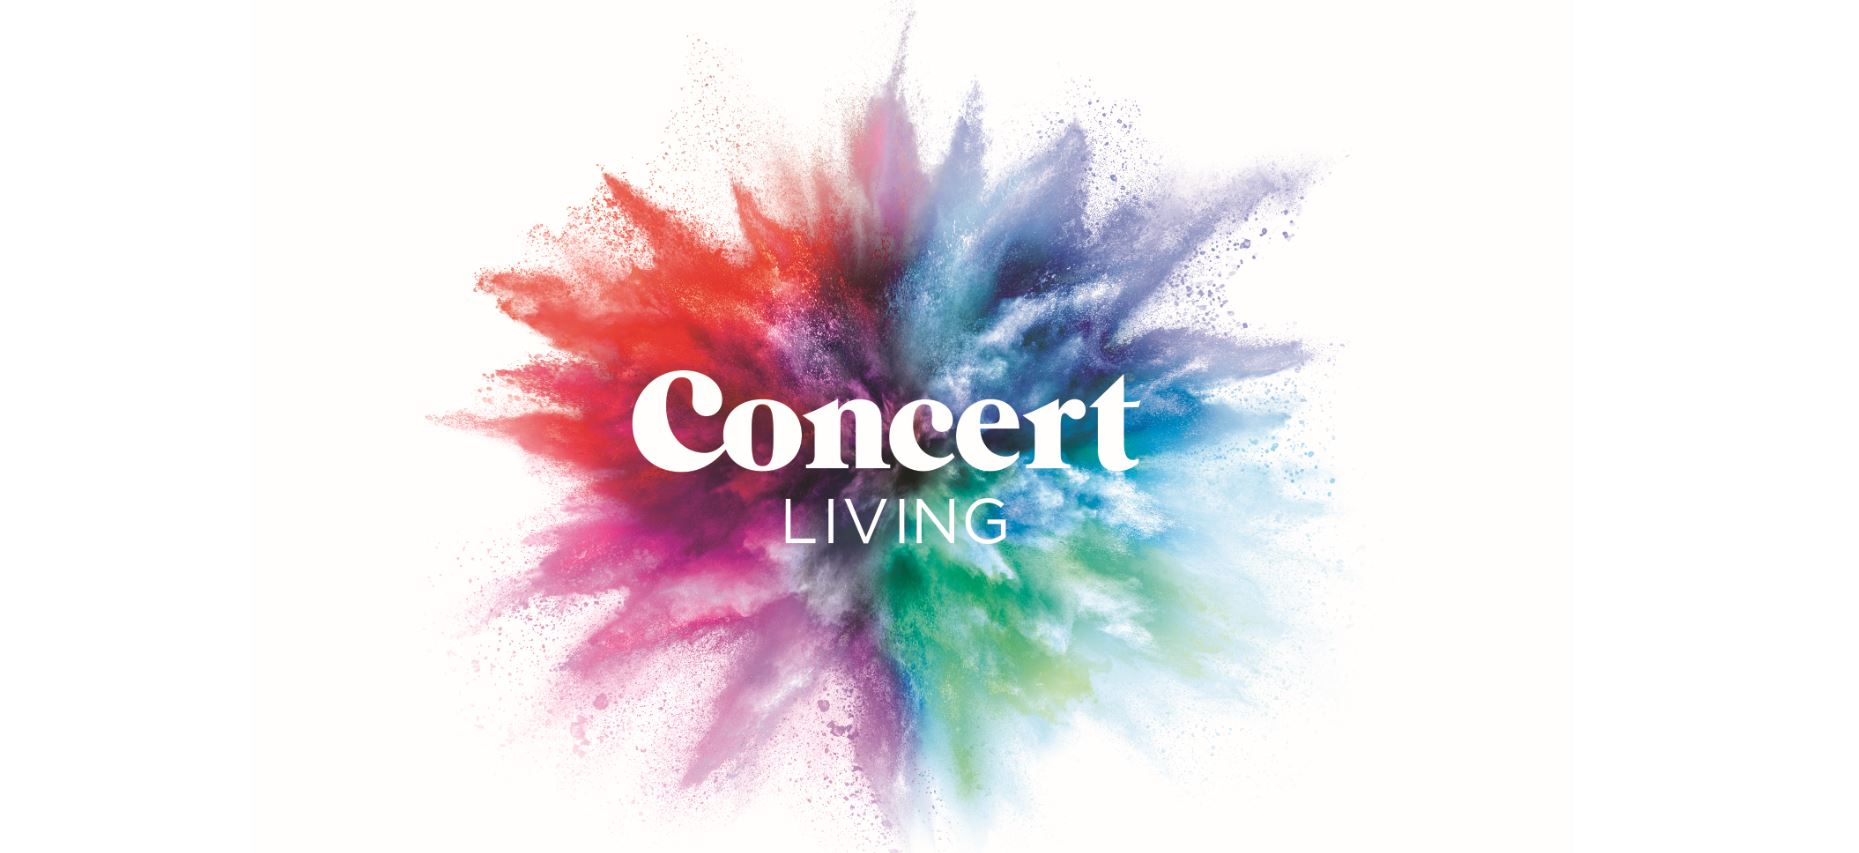 We would like to welcome Concert Living to ContactBuilder.